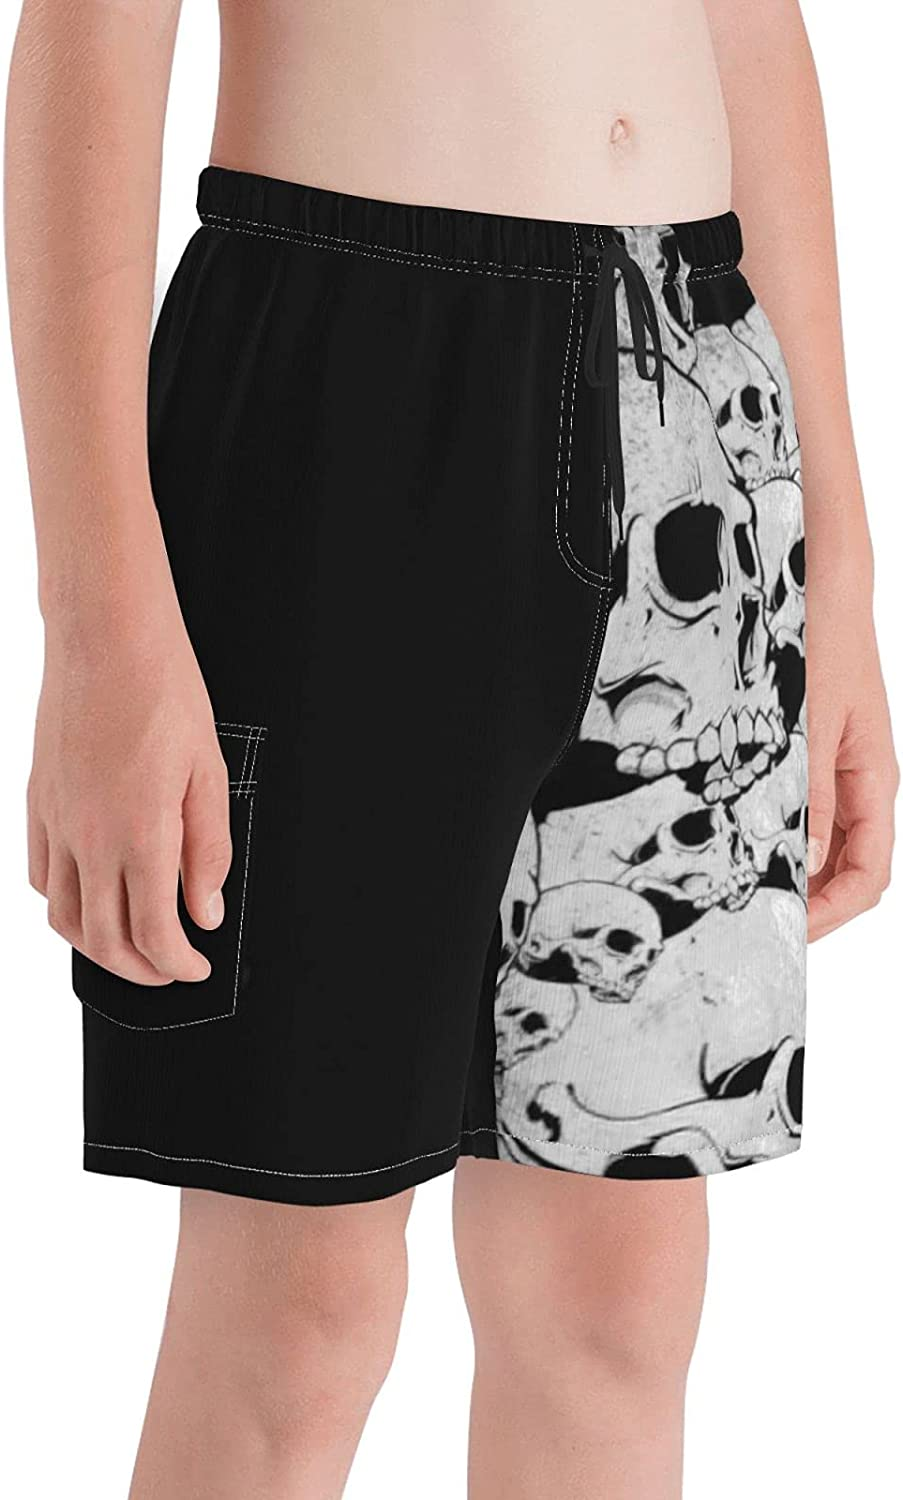 Boys Beach Board Shorts Quick Dry Youth Swim Trunks with Pockets Mesh Lining